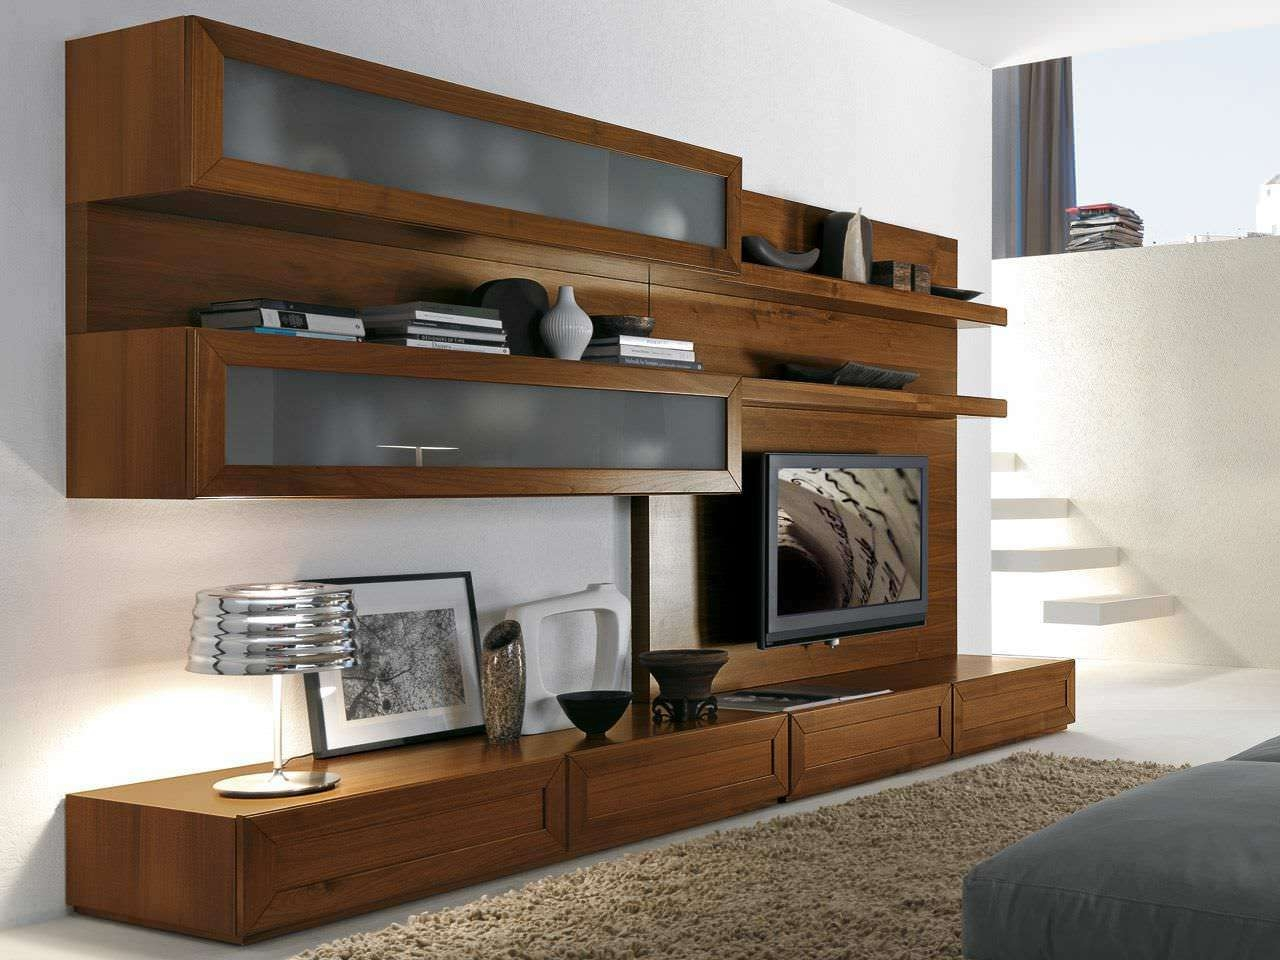 Extremely Strong Tv Cabinet With Doors In Elegant Look | All For Funky Tv Cabinets (View 9 of 20)